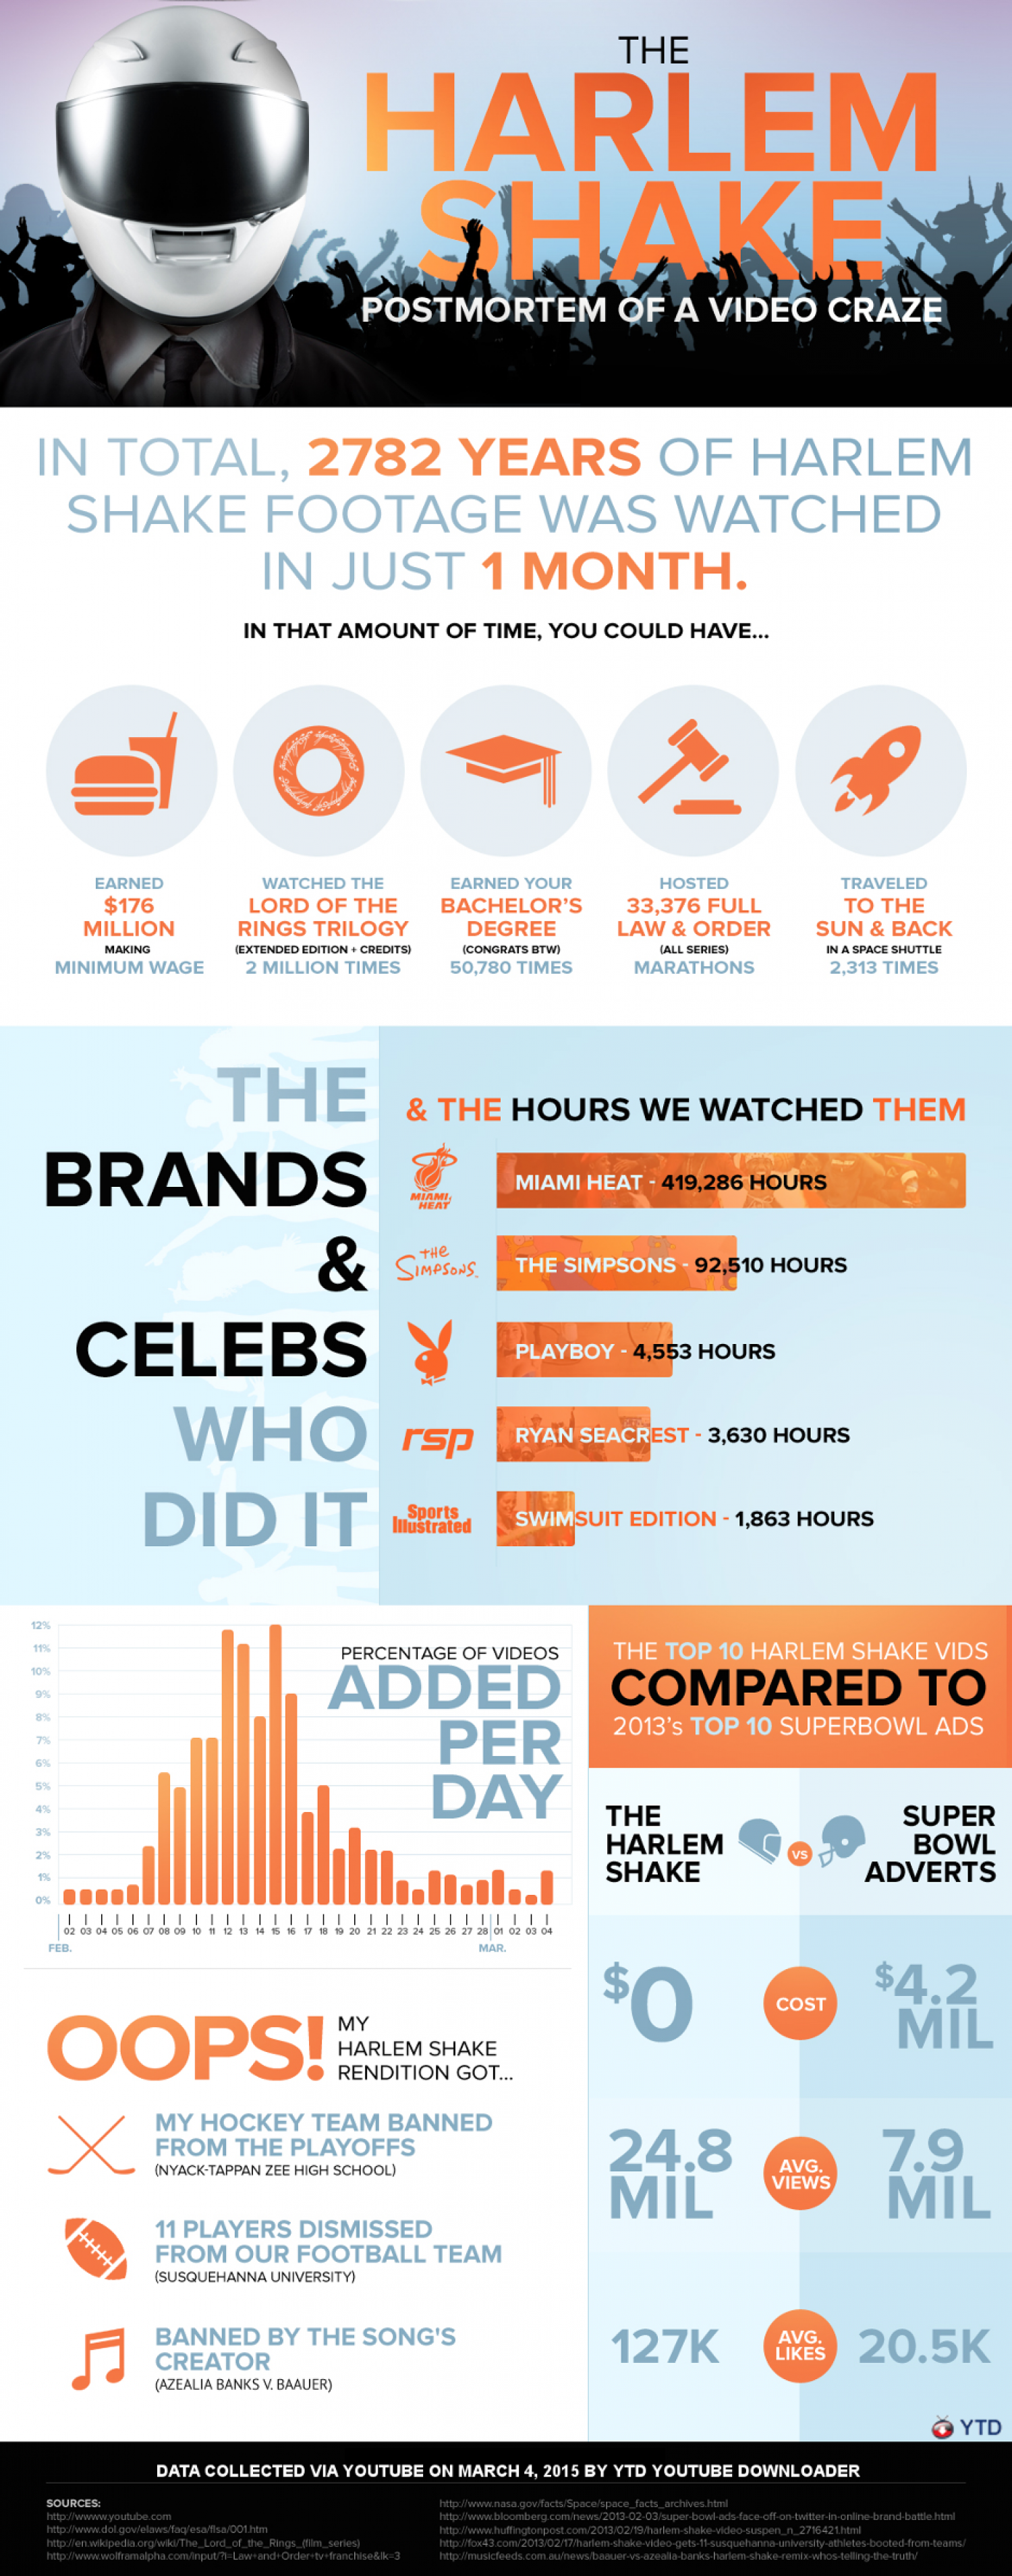 The Harlem Shake: Data and Stats Infographic